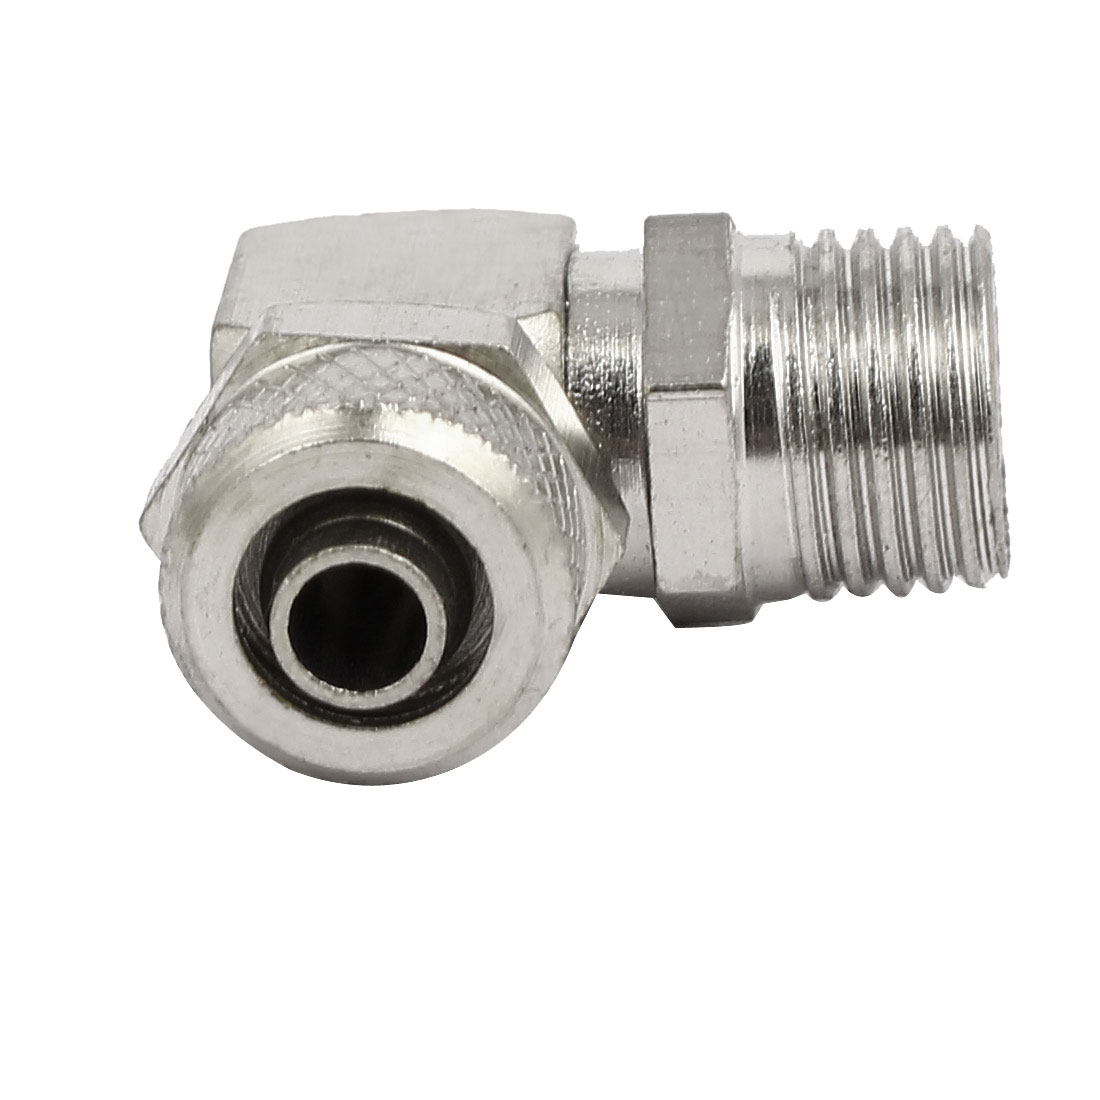 1/4BSP Male Thread L Shaped Pneumatic Air Quick Connecting Coupler 5pcs - image 3 of 4